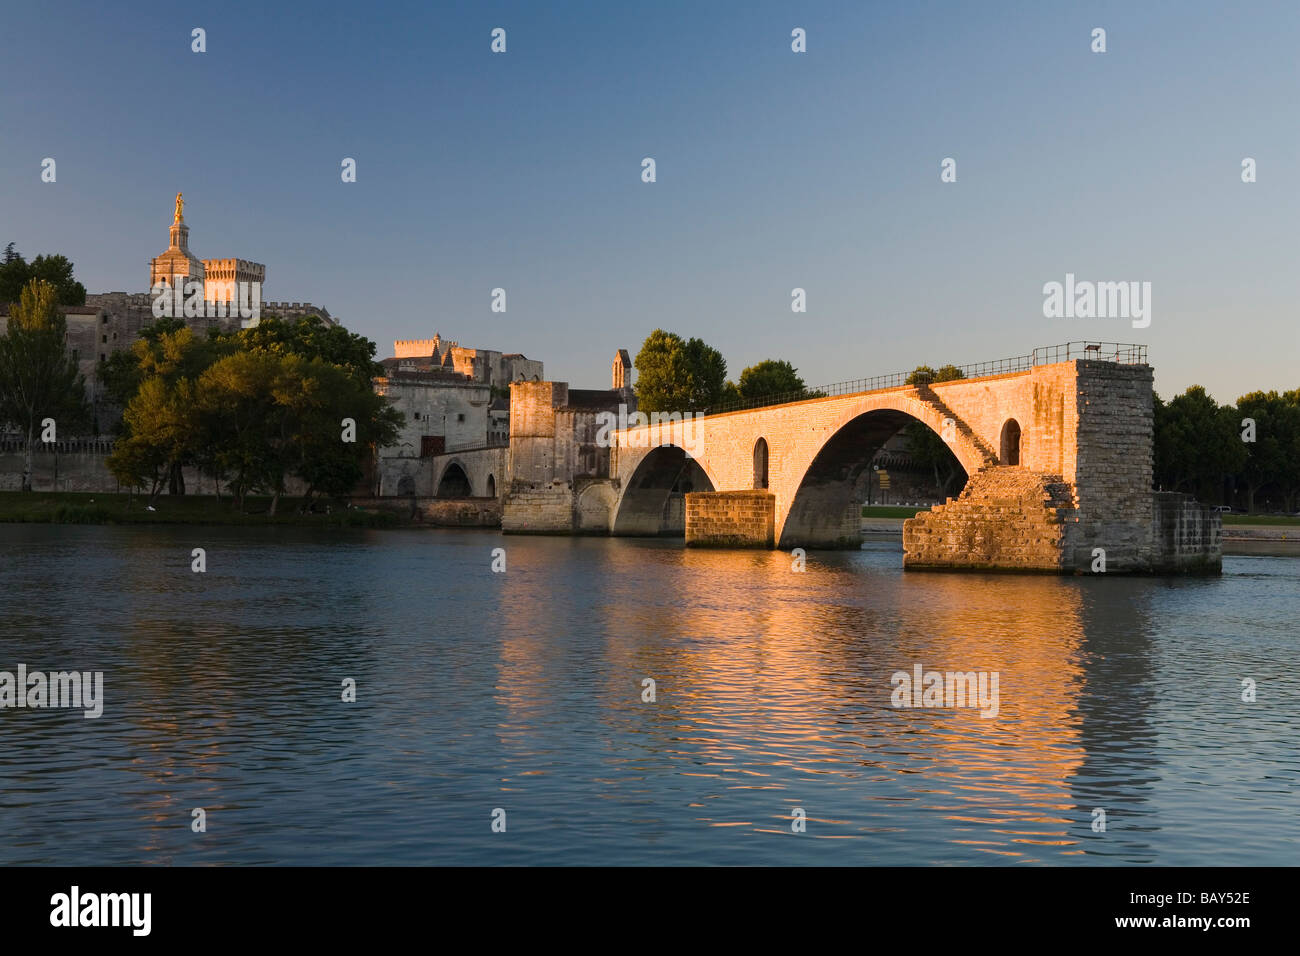 View at the bridge St. Benezet in the evening light, Avignon, Vaucluse, Provence, France - Stock Image